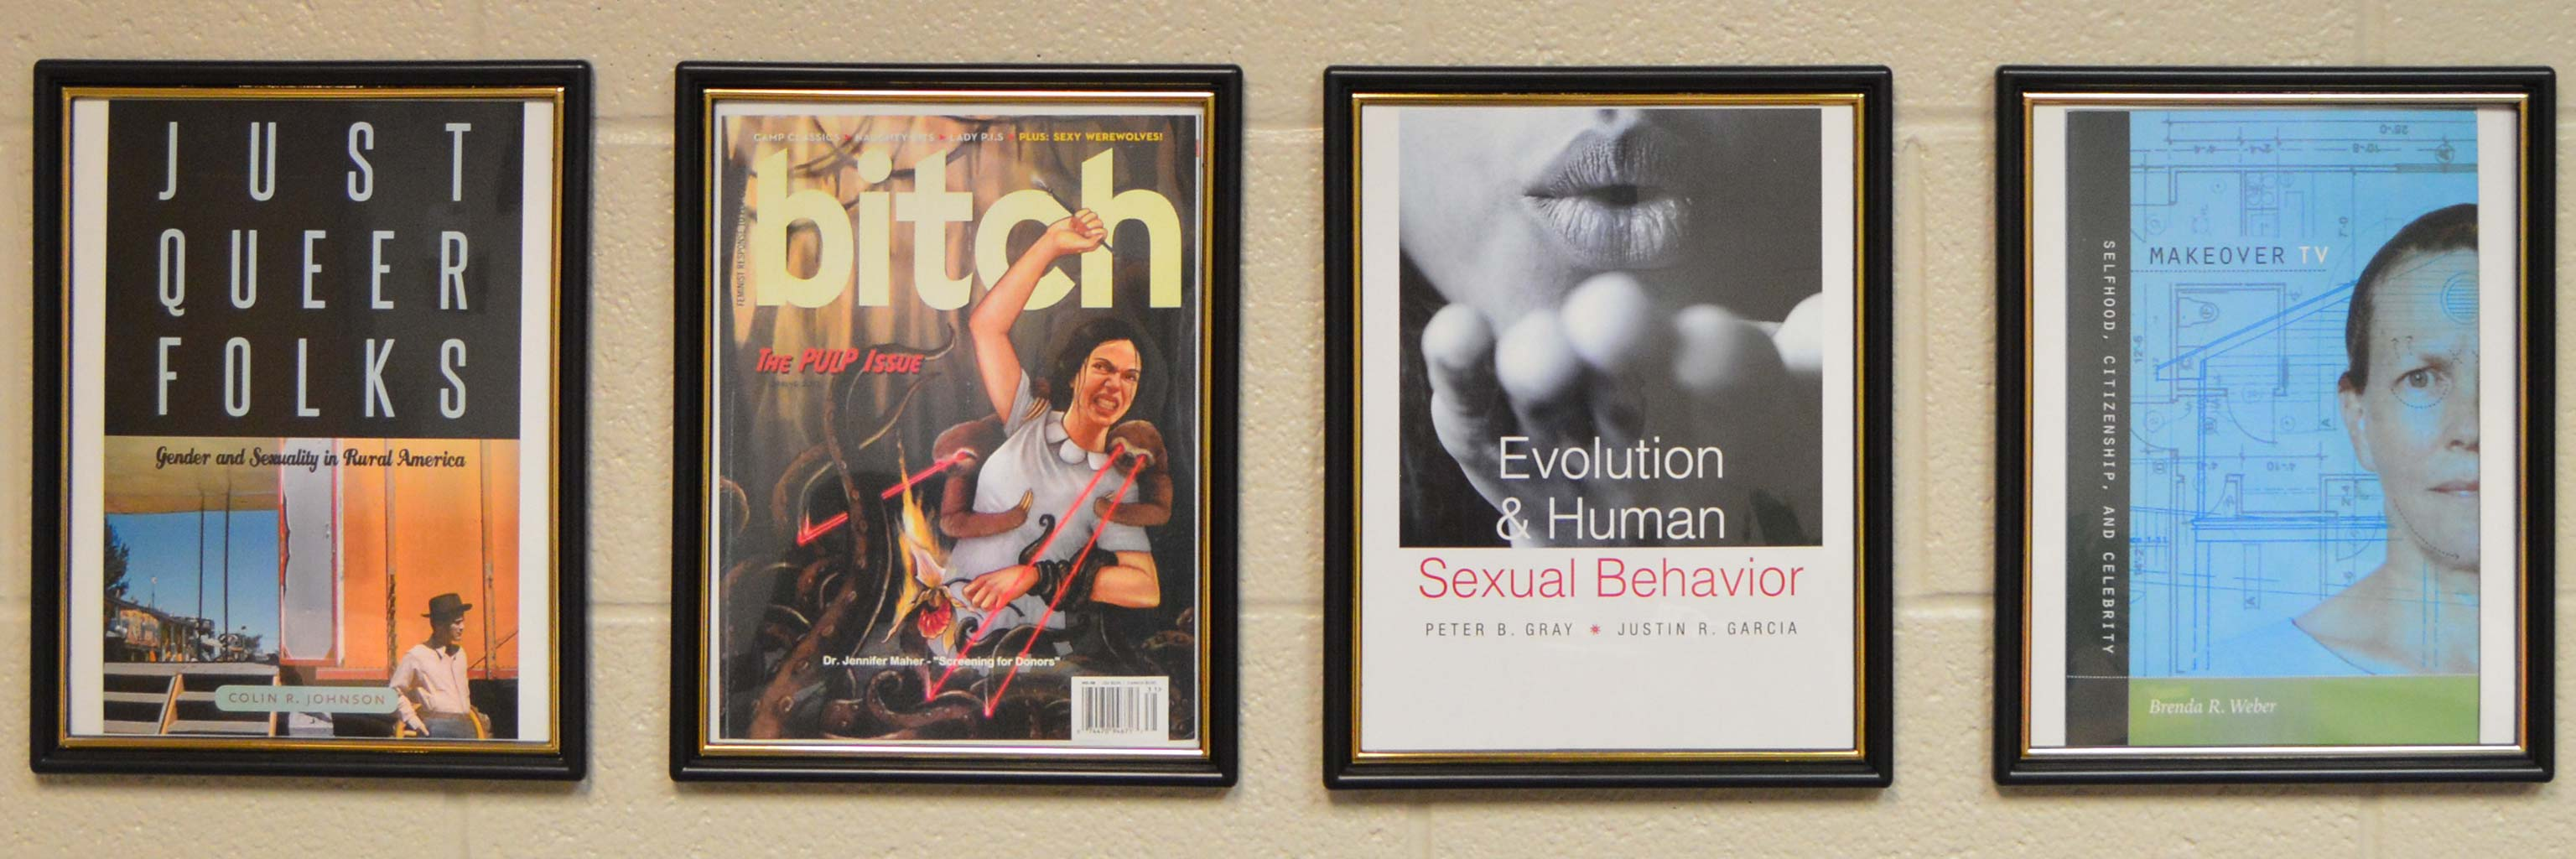 framed publications hanging on a wall